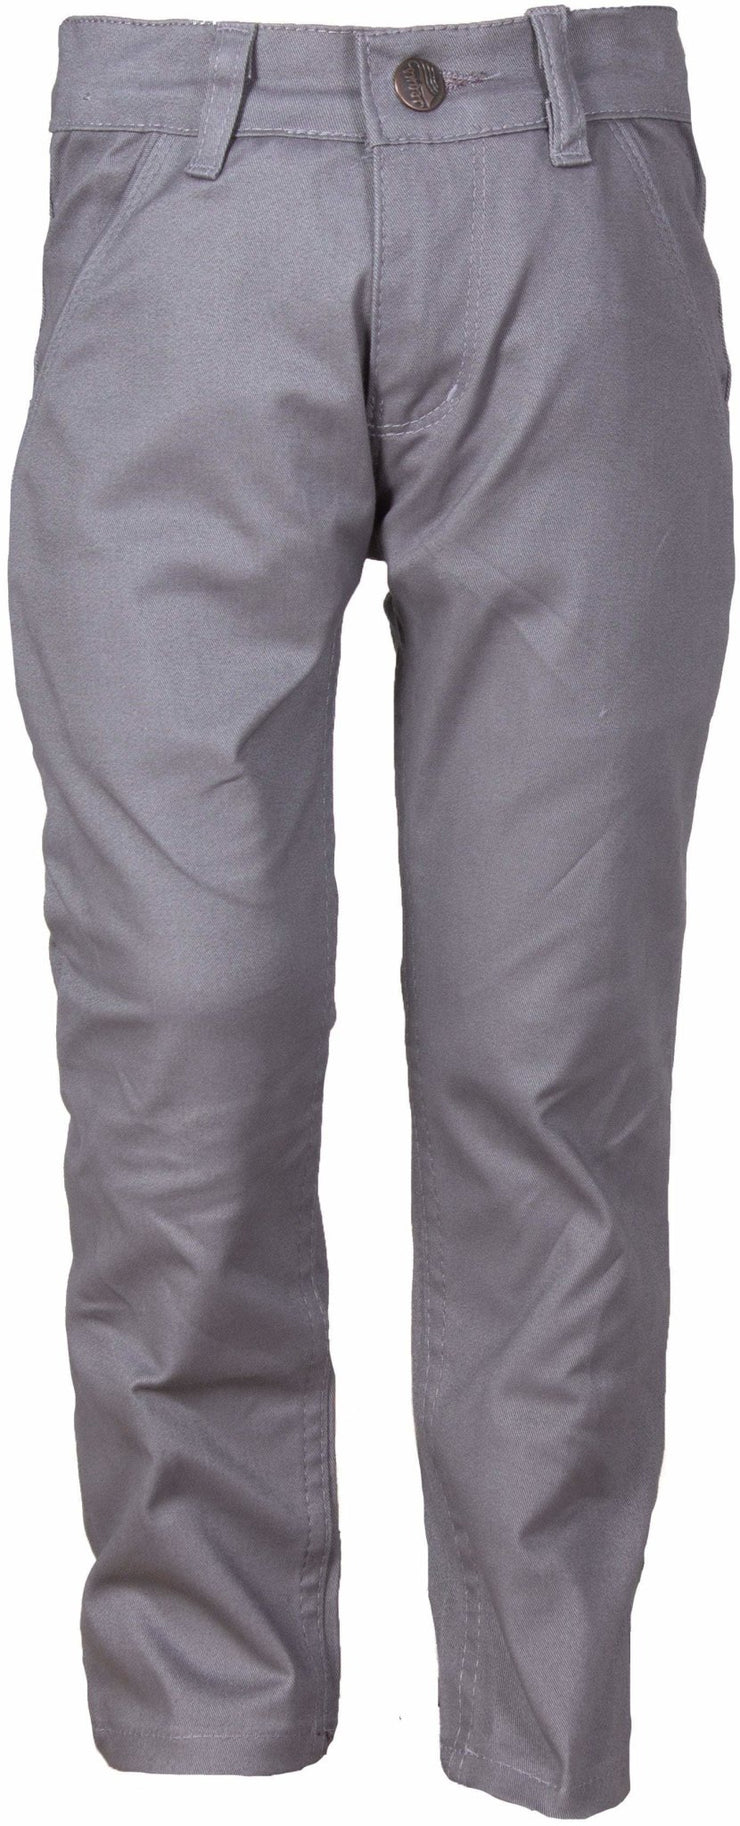 Boys Light Gray Pants - Elma's Clothing